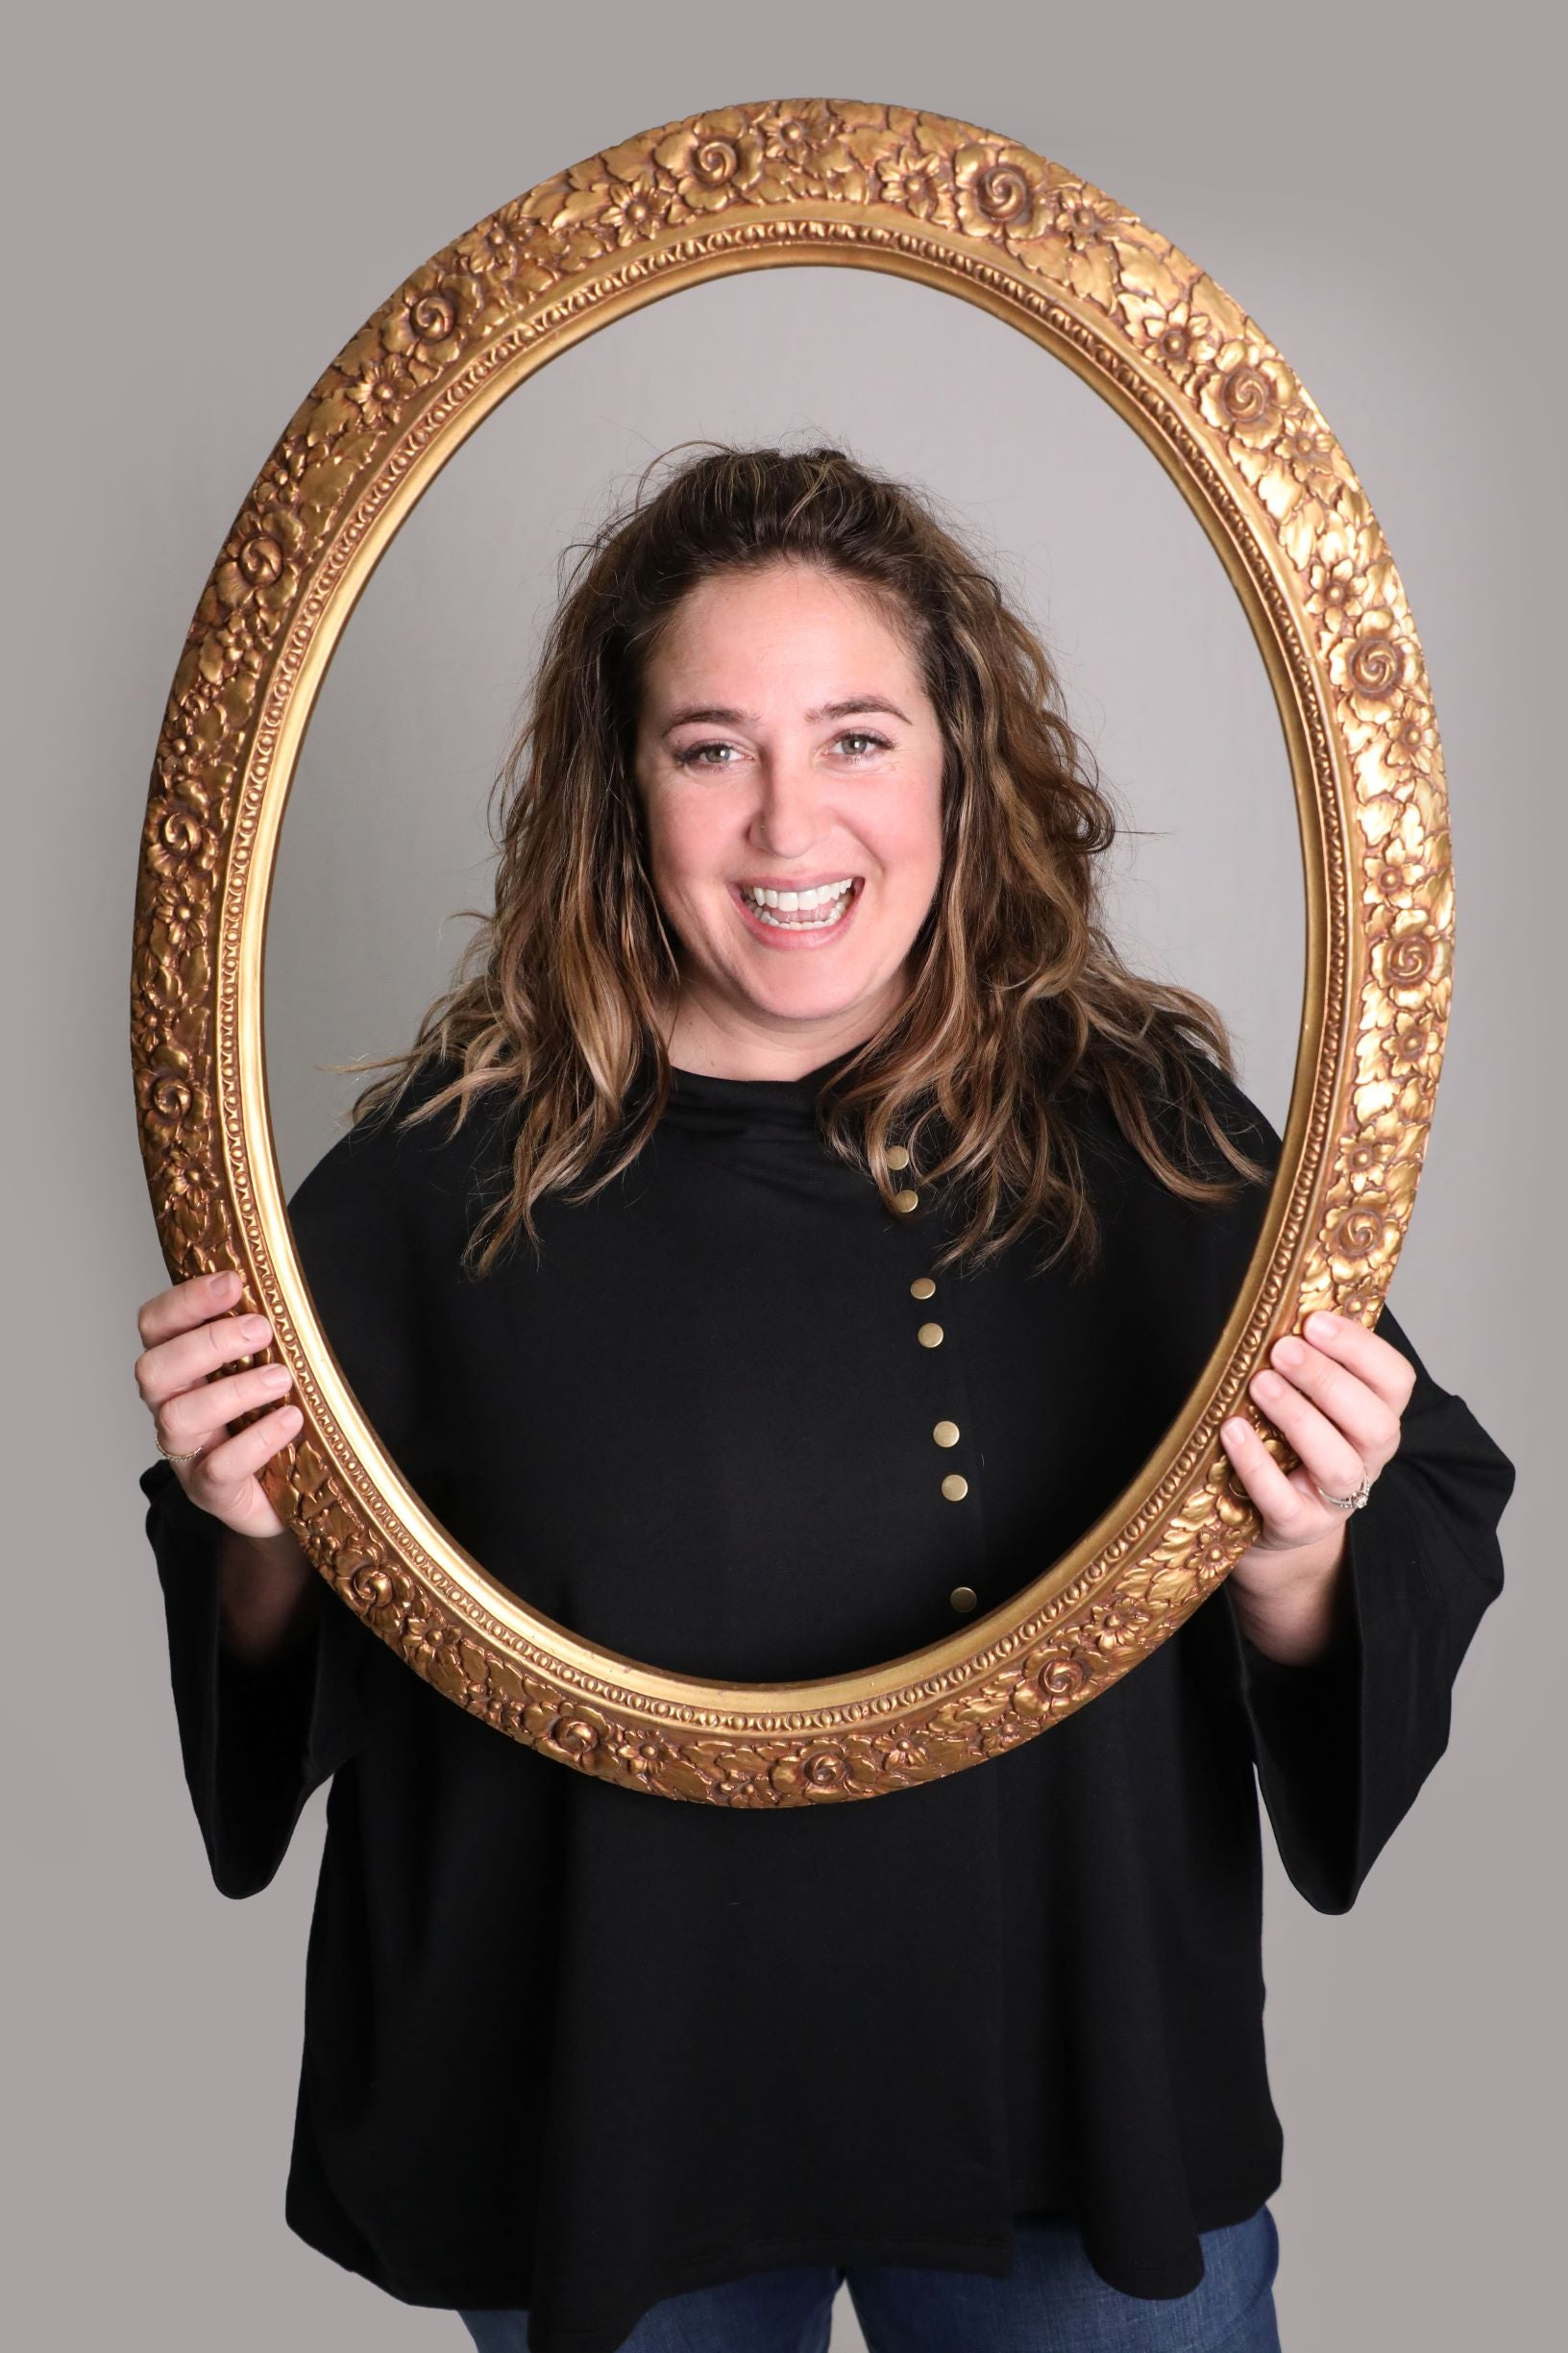 Woman smiling using a gold frame as a prop to frame the shot